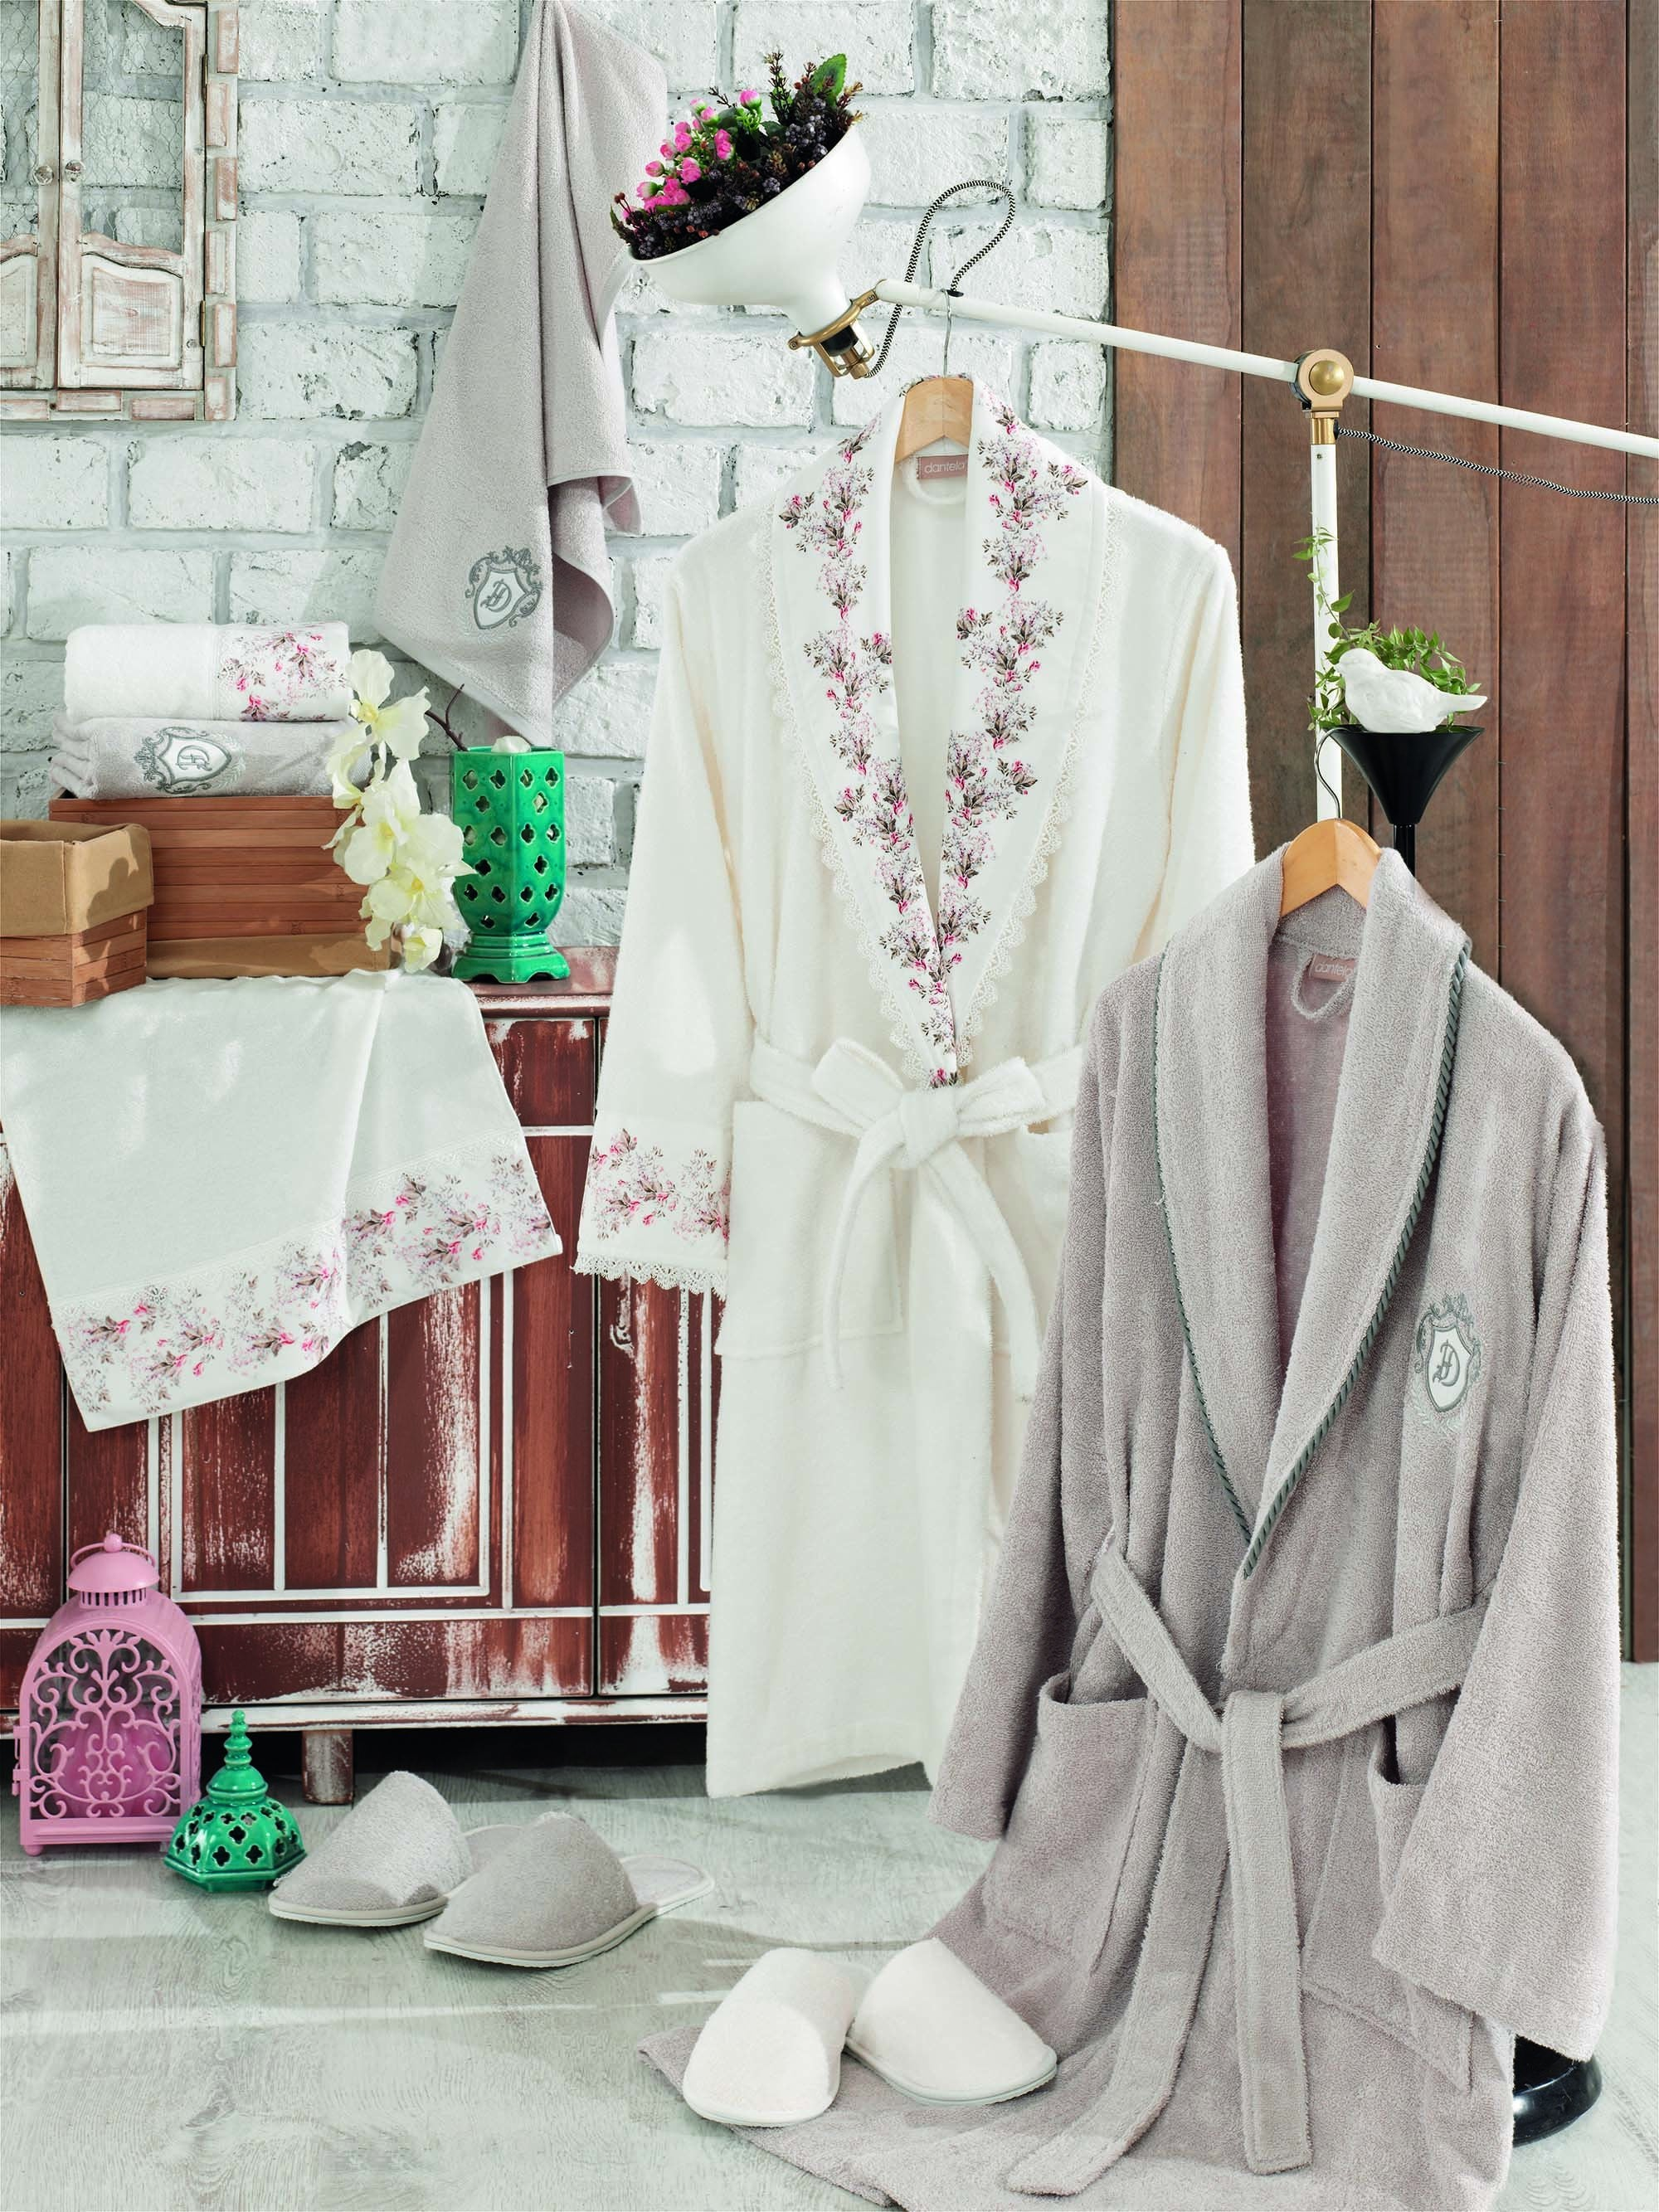 8PCS PREMIUM PRINTED BAMBOO BATHROBE FAMILY SET WITH FRENCH GUIPURE - COTTONISH